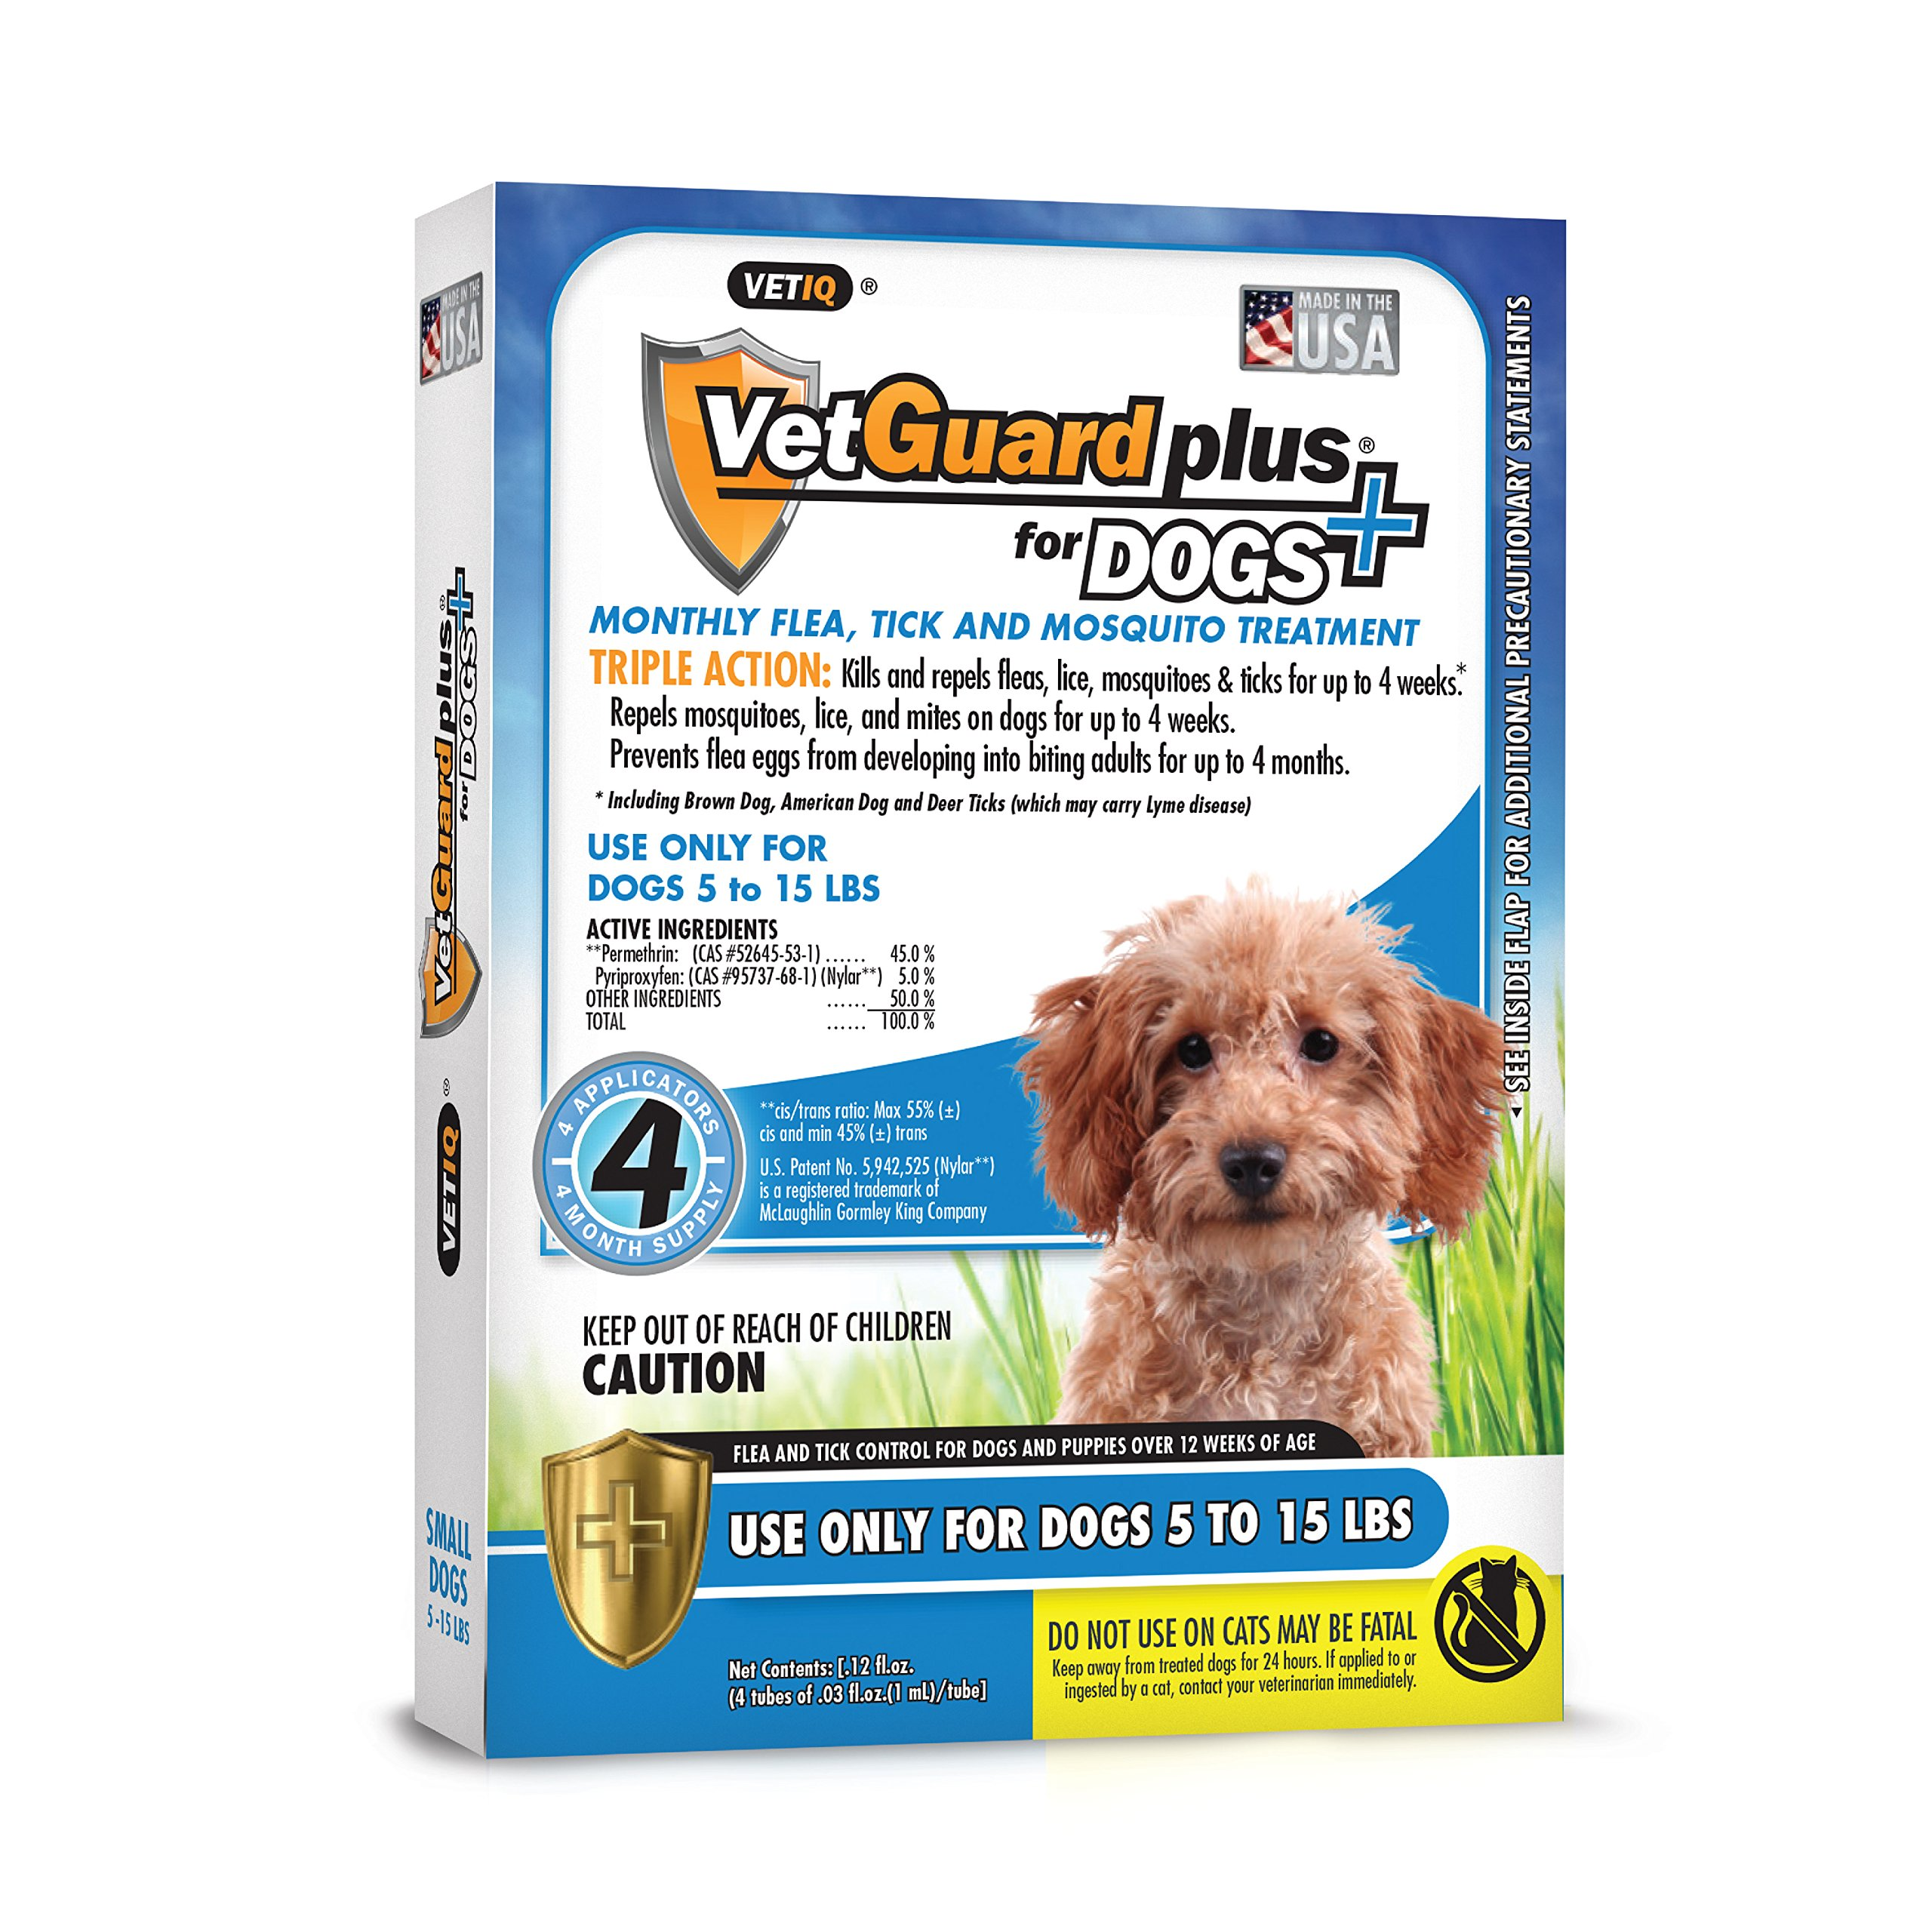 VetGuard Plus Flea & Tick Treatment Small Dogs, 5-15 lbs, 4 Month Supply